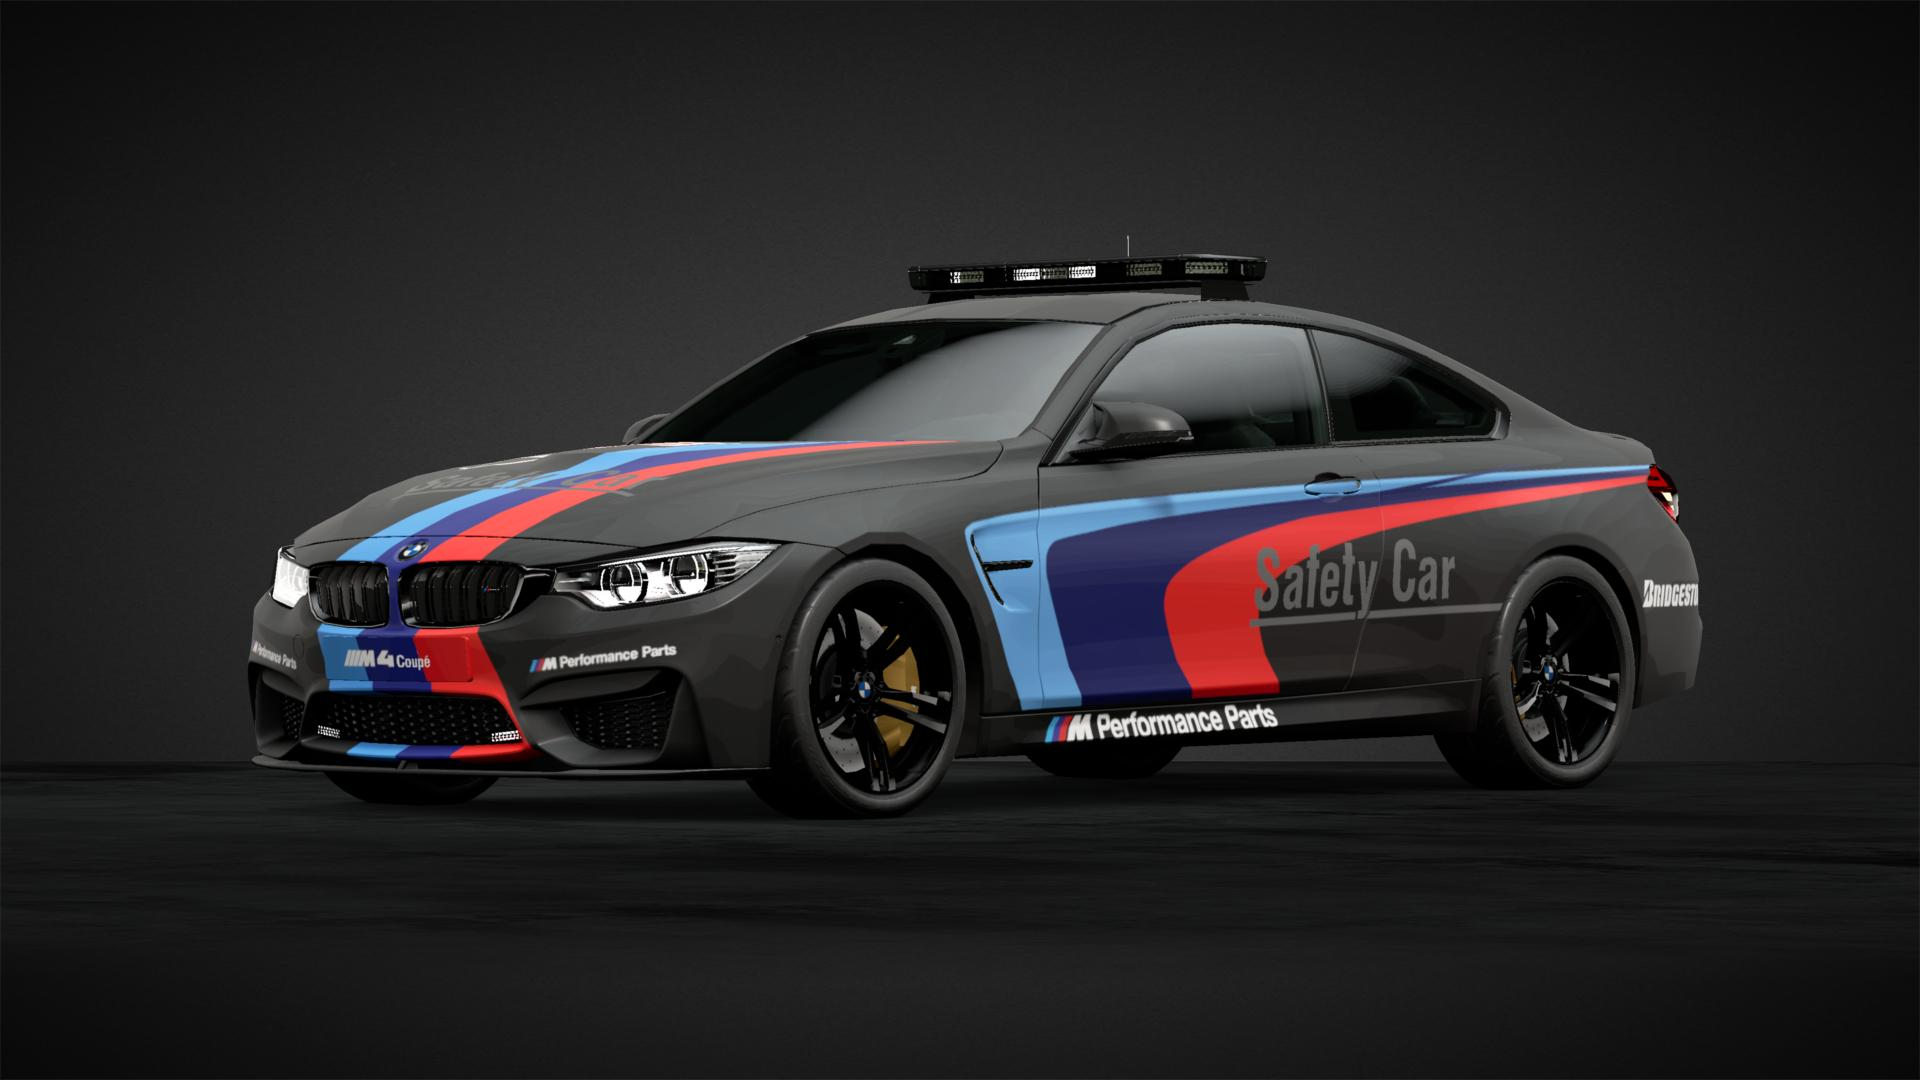 Bmw M4 Motogp Safety Car Car Livery By Oter Pungen Community Gran Turismo Sport